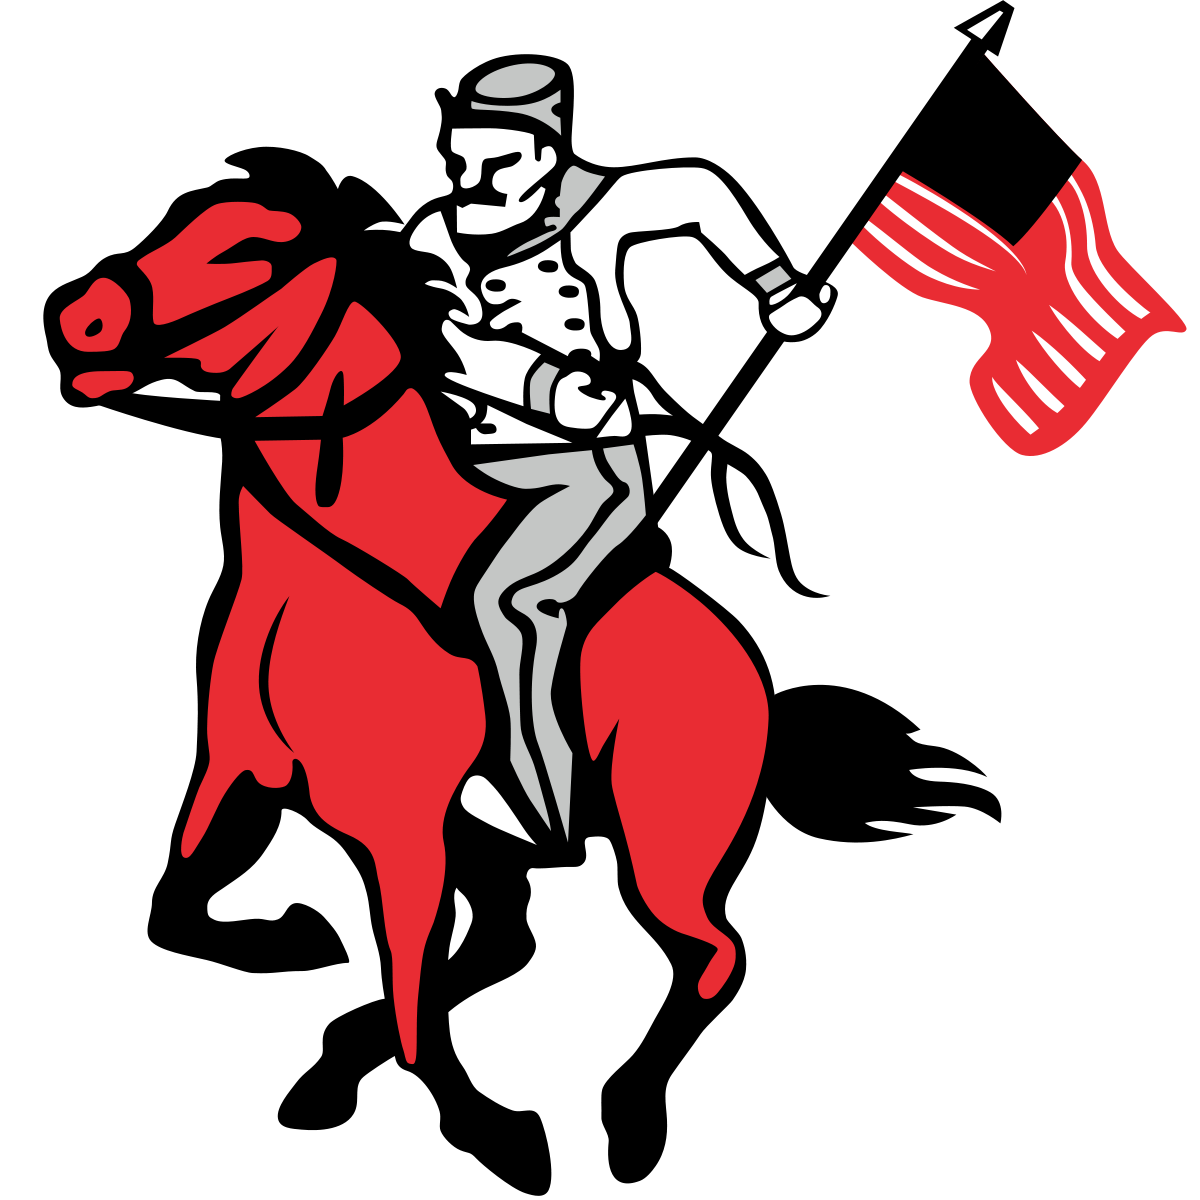 High school mascots clipart graphic freeuse library William Howard Taft High School (San Antonio) - Wikipedia graphic freeuse library